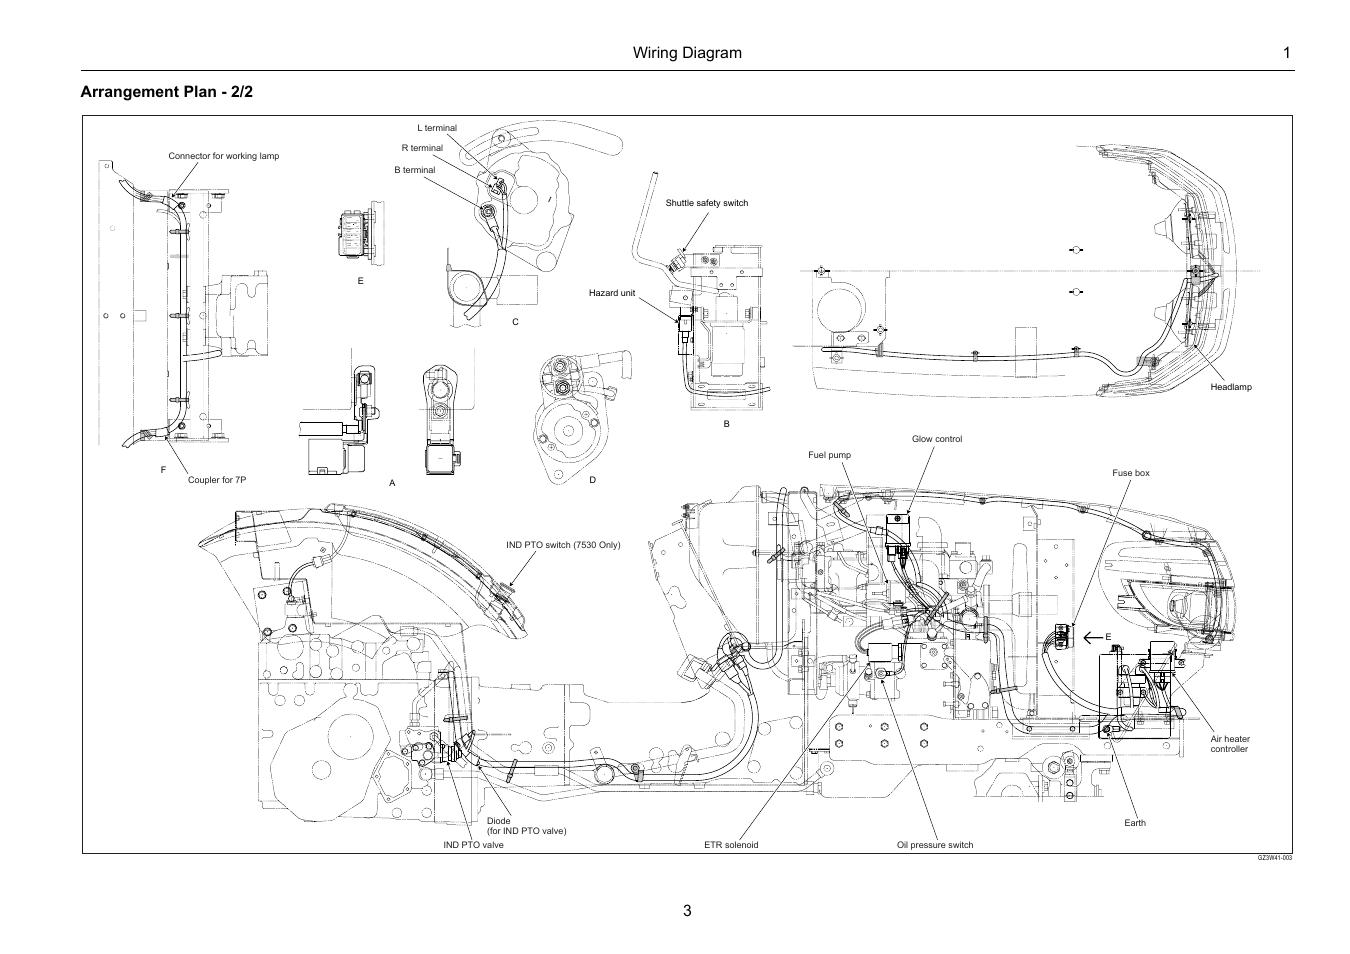 Wiring Diagram 1 3 Arrangement Plan